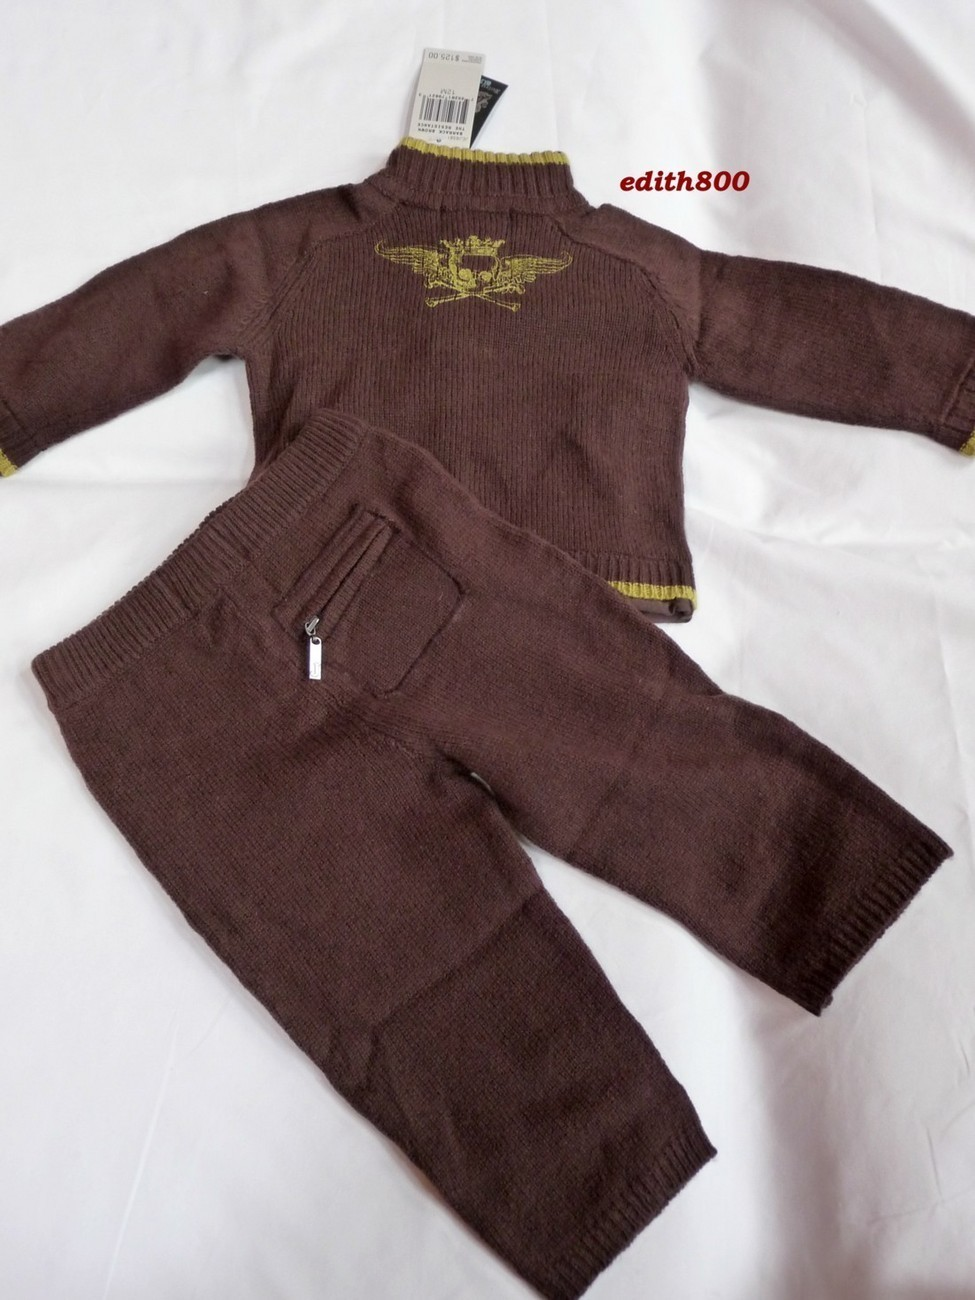 Juicy Couture Baby Boy Track Suit Set 12 Months NWT $125